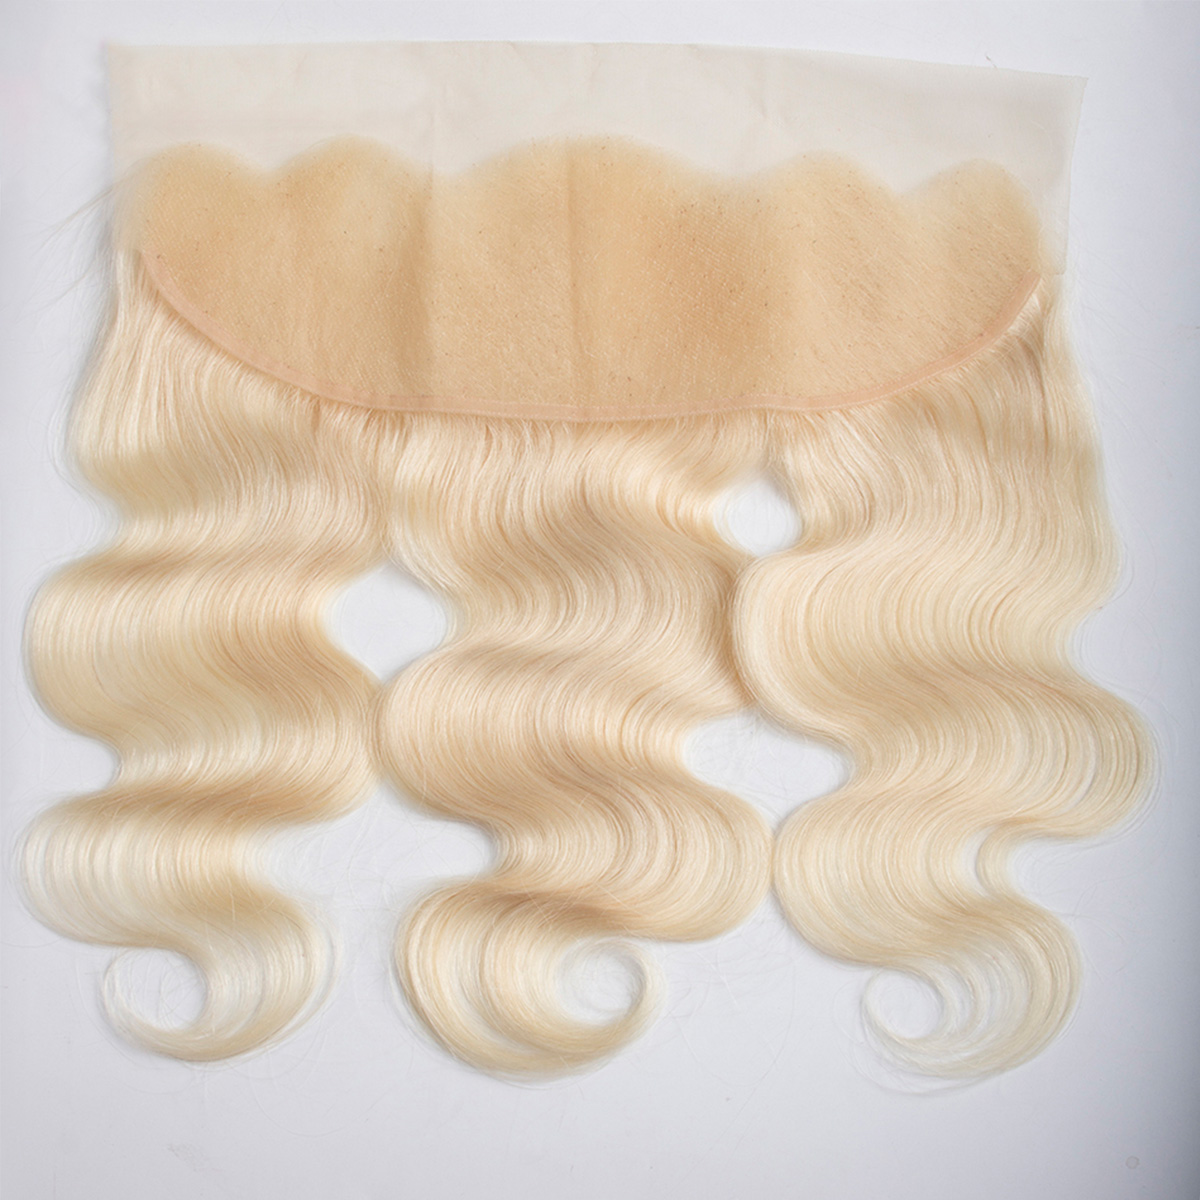 613 Body Wave 13x4 Lace Frontal